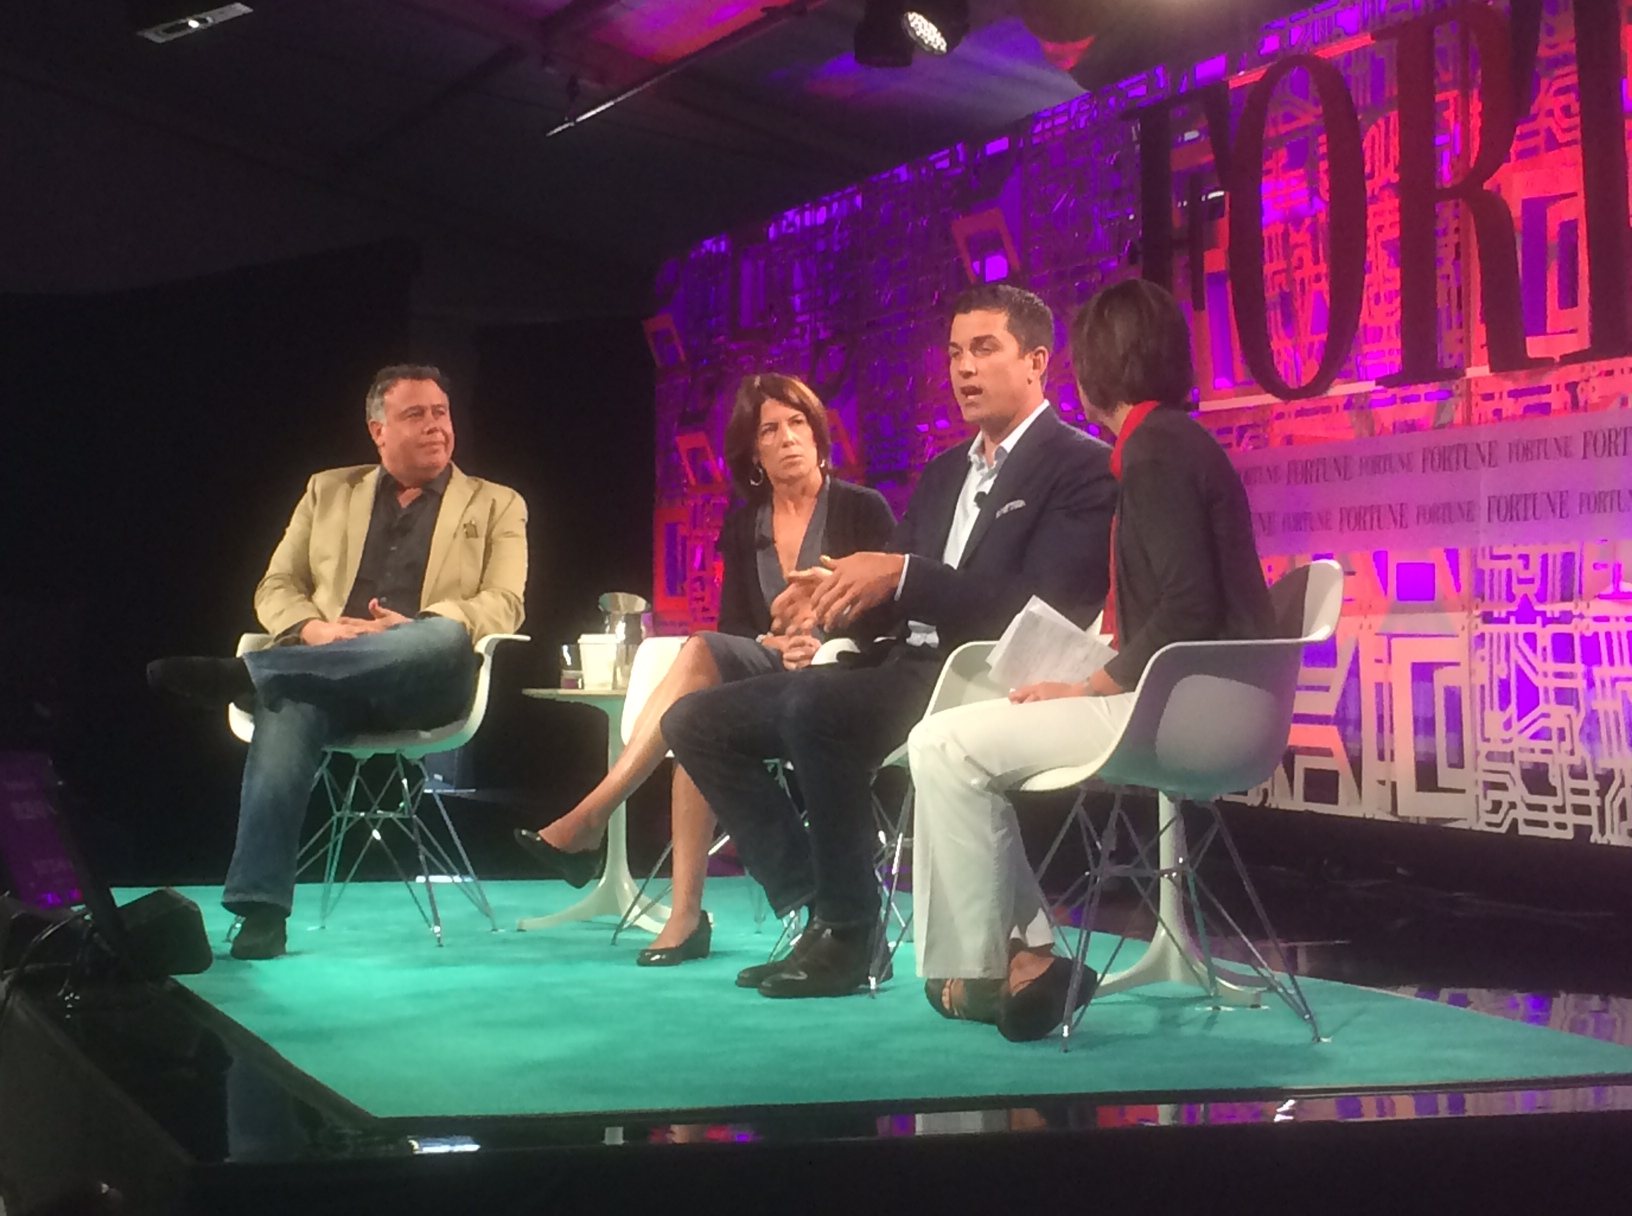 Dion Weisler of HP, Helena Foulkes of CVS, Tom Farley of NYSE at 2015 Fortune Brainstorm Tech